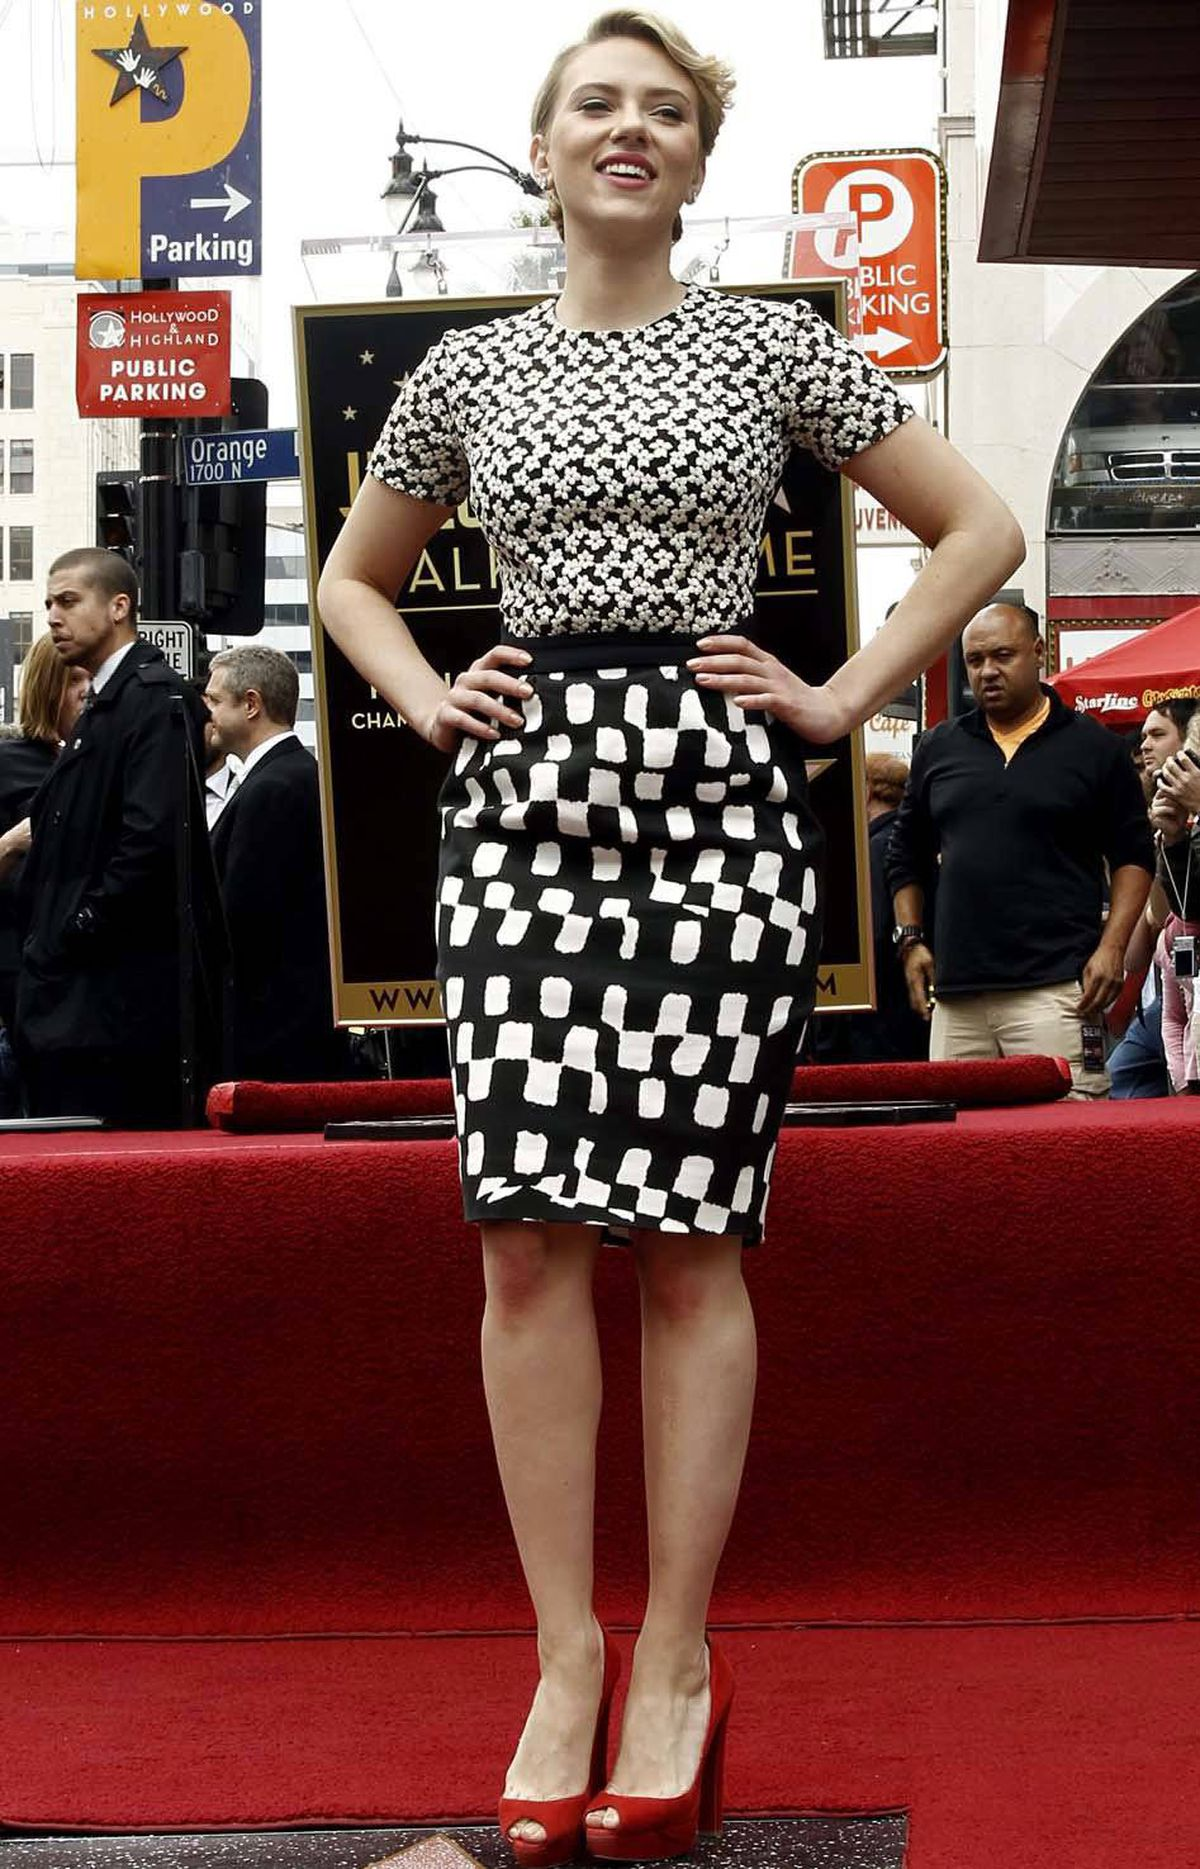 Scarlett Johansson, 27, celebrates her monumental lifetime of cinematic greatness at the unveiling of her star on the Hollywood Walk of Fame last week.